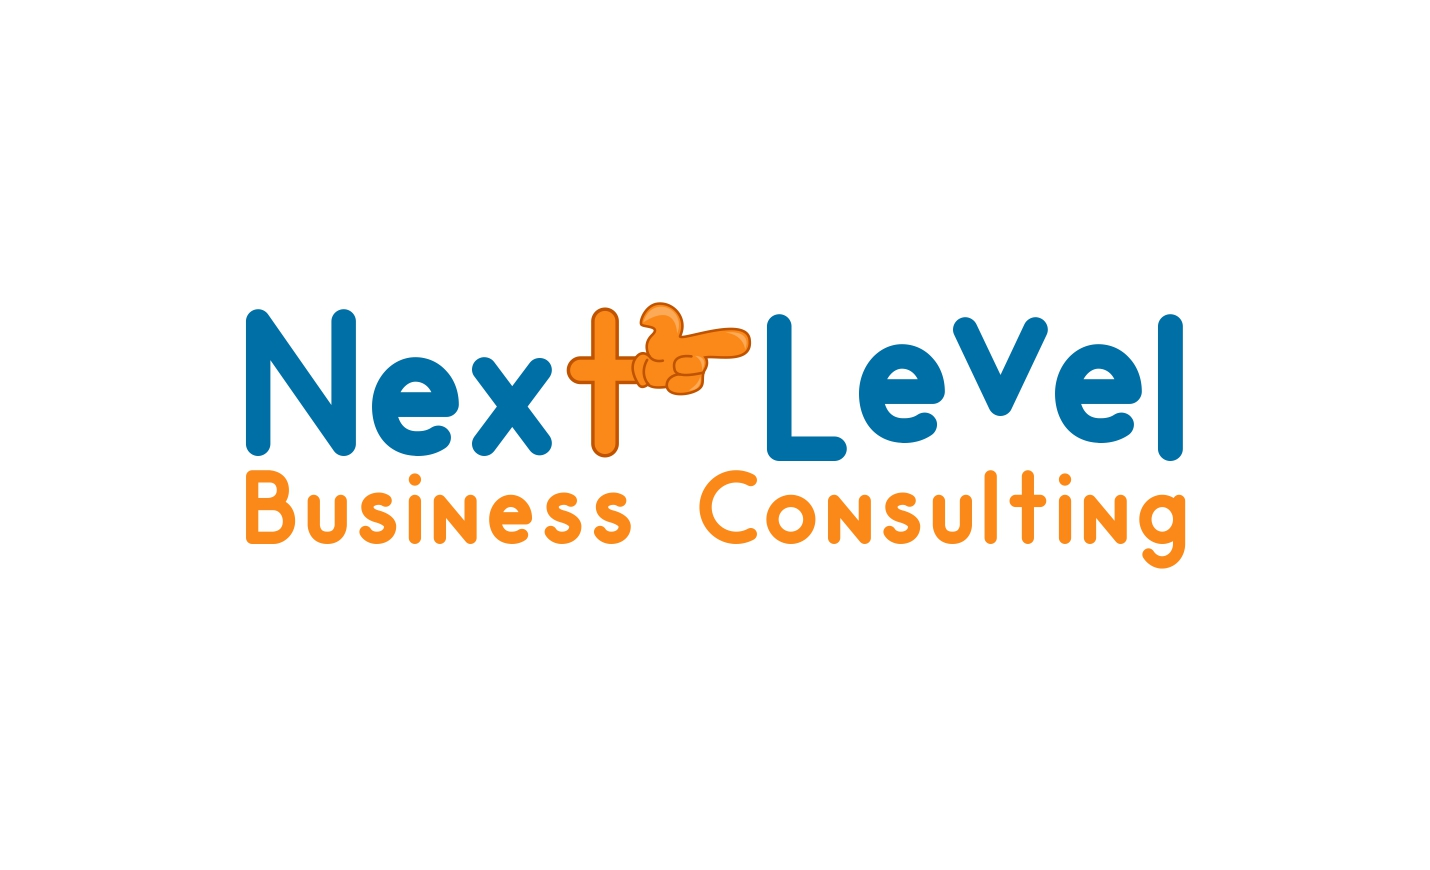 Playful conservative business consultant logo design for for Business design consultant